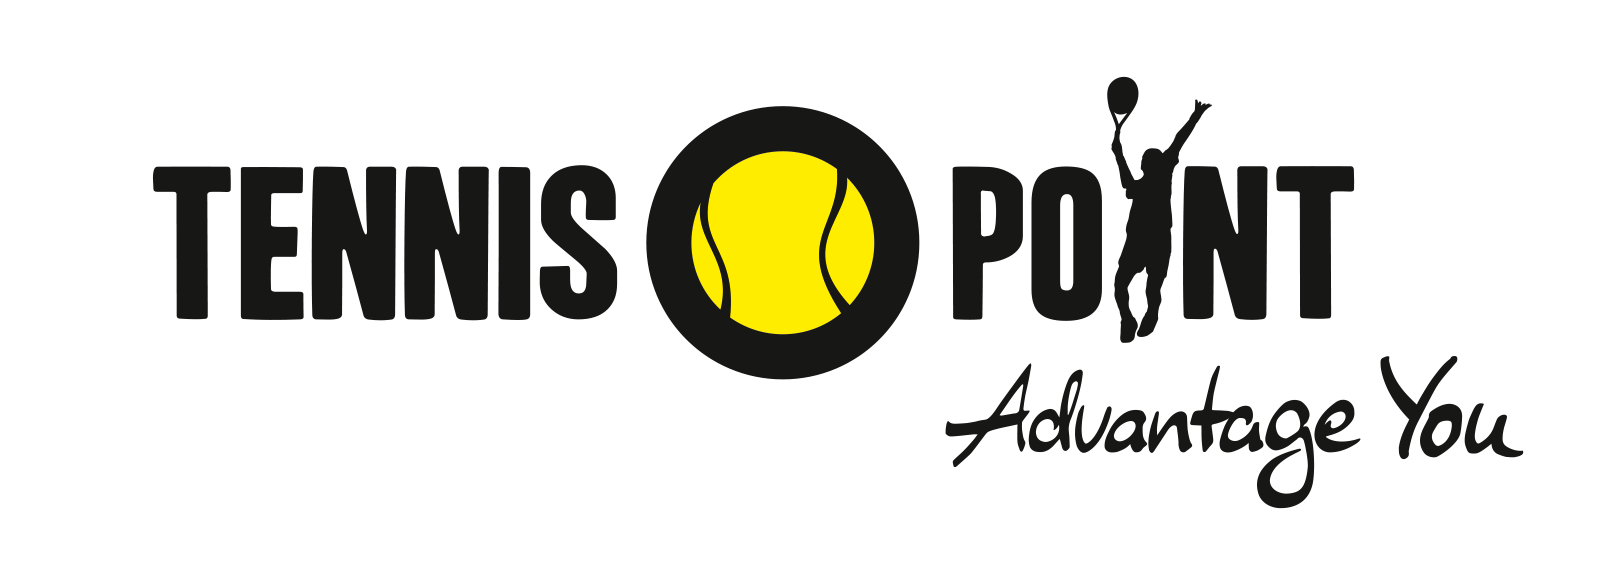 Tennis Point neu